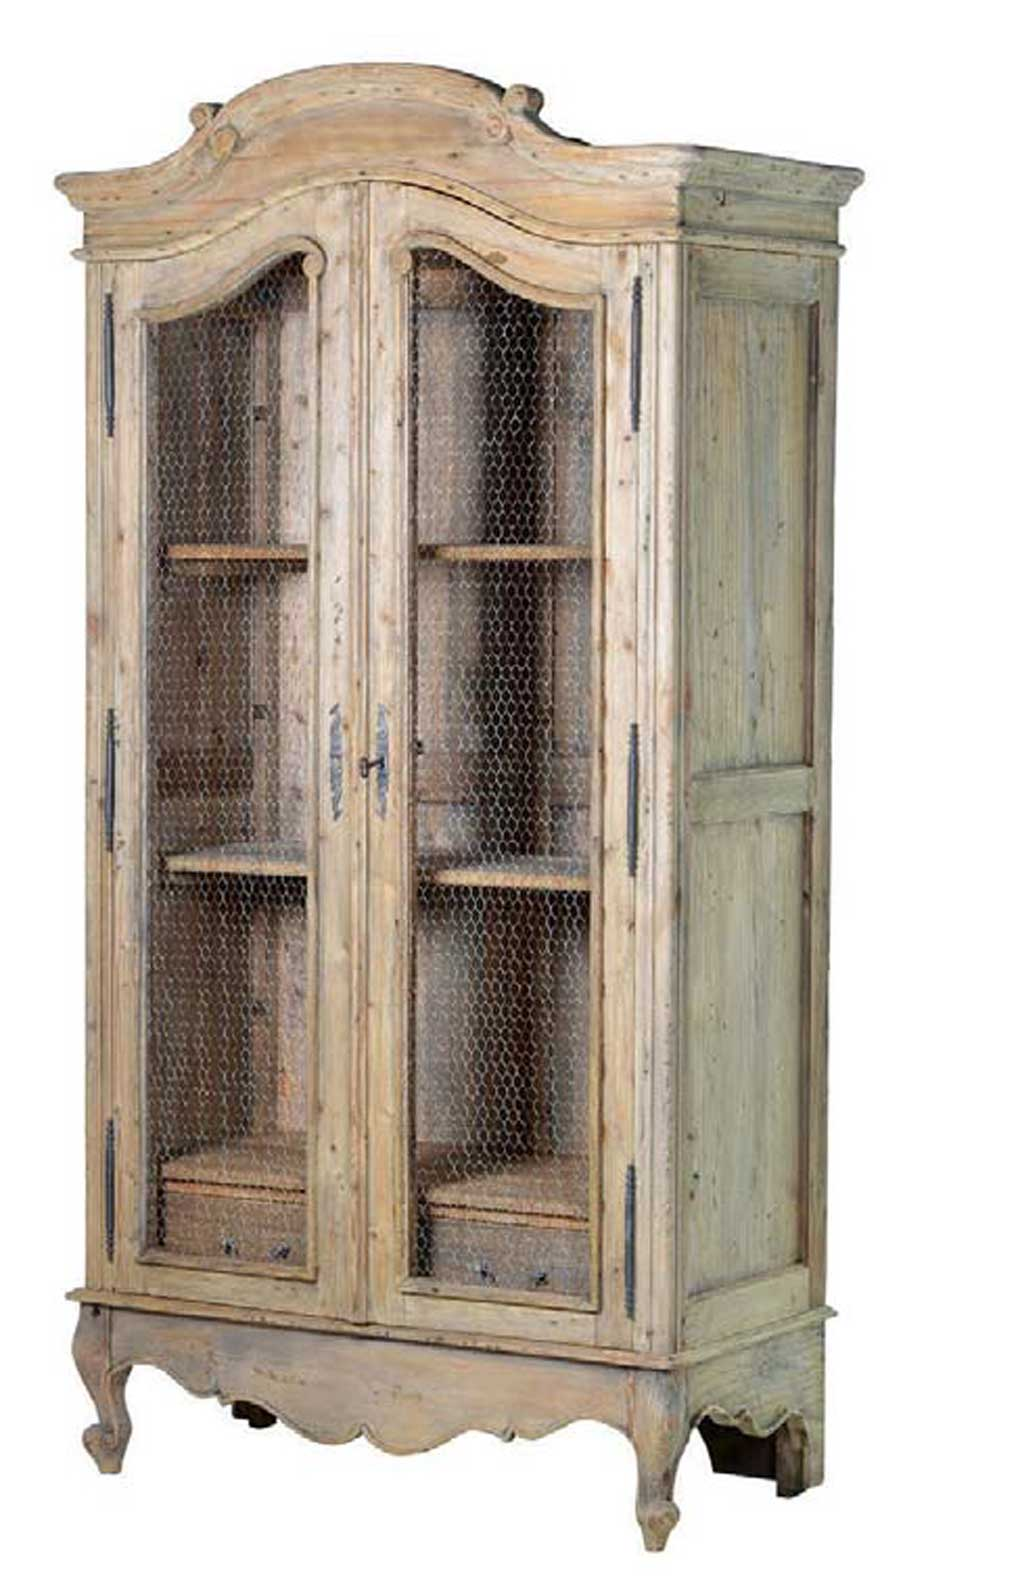 Rustic wooden French armoire with wire fronted doors.